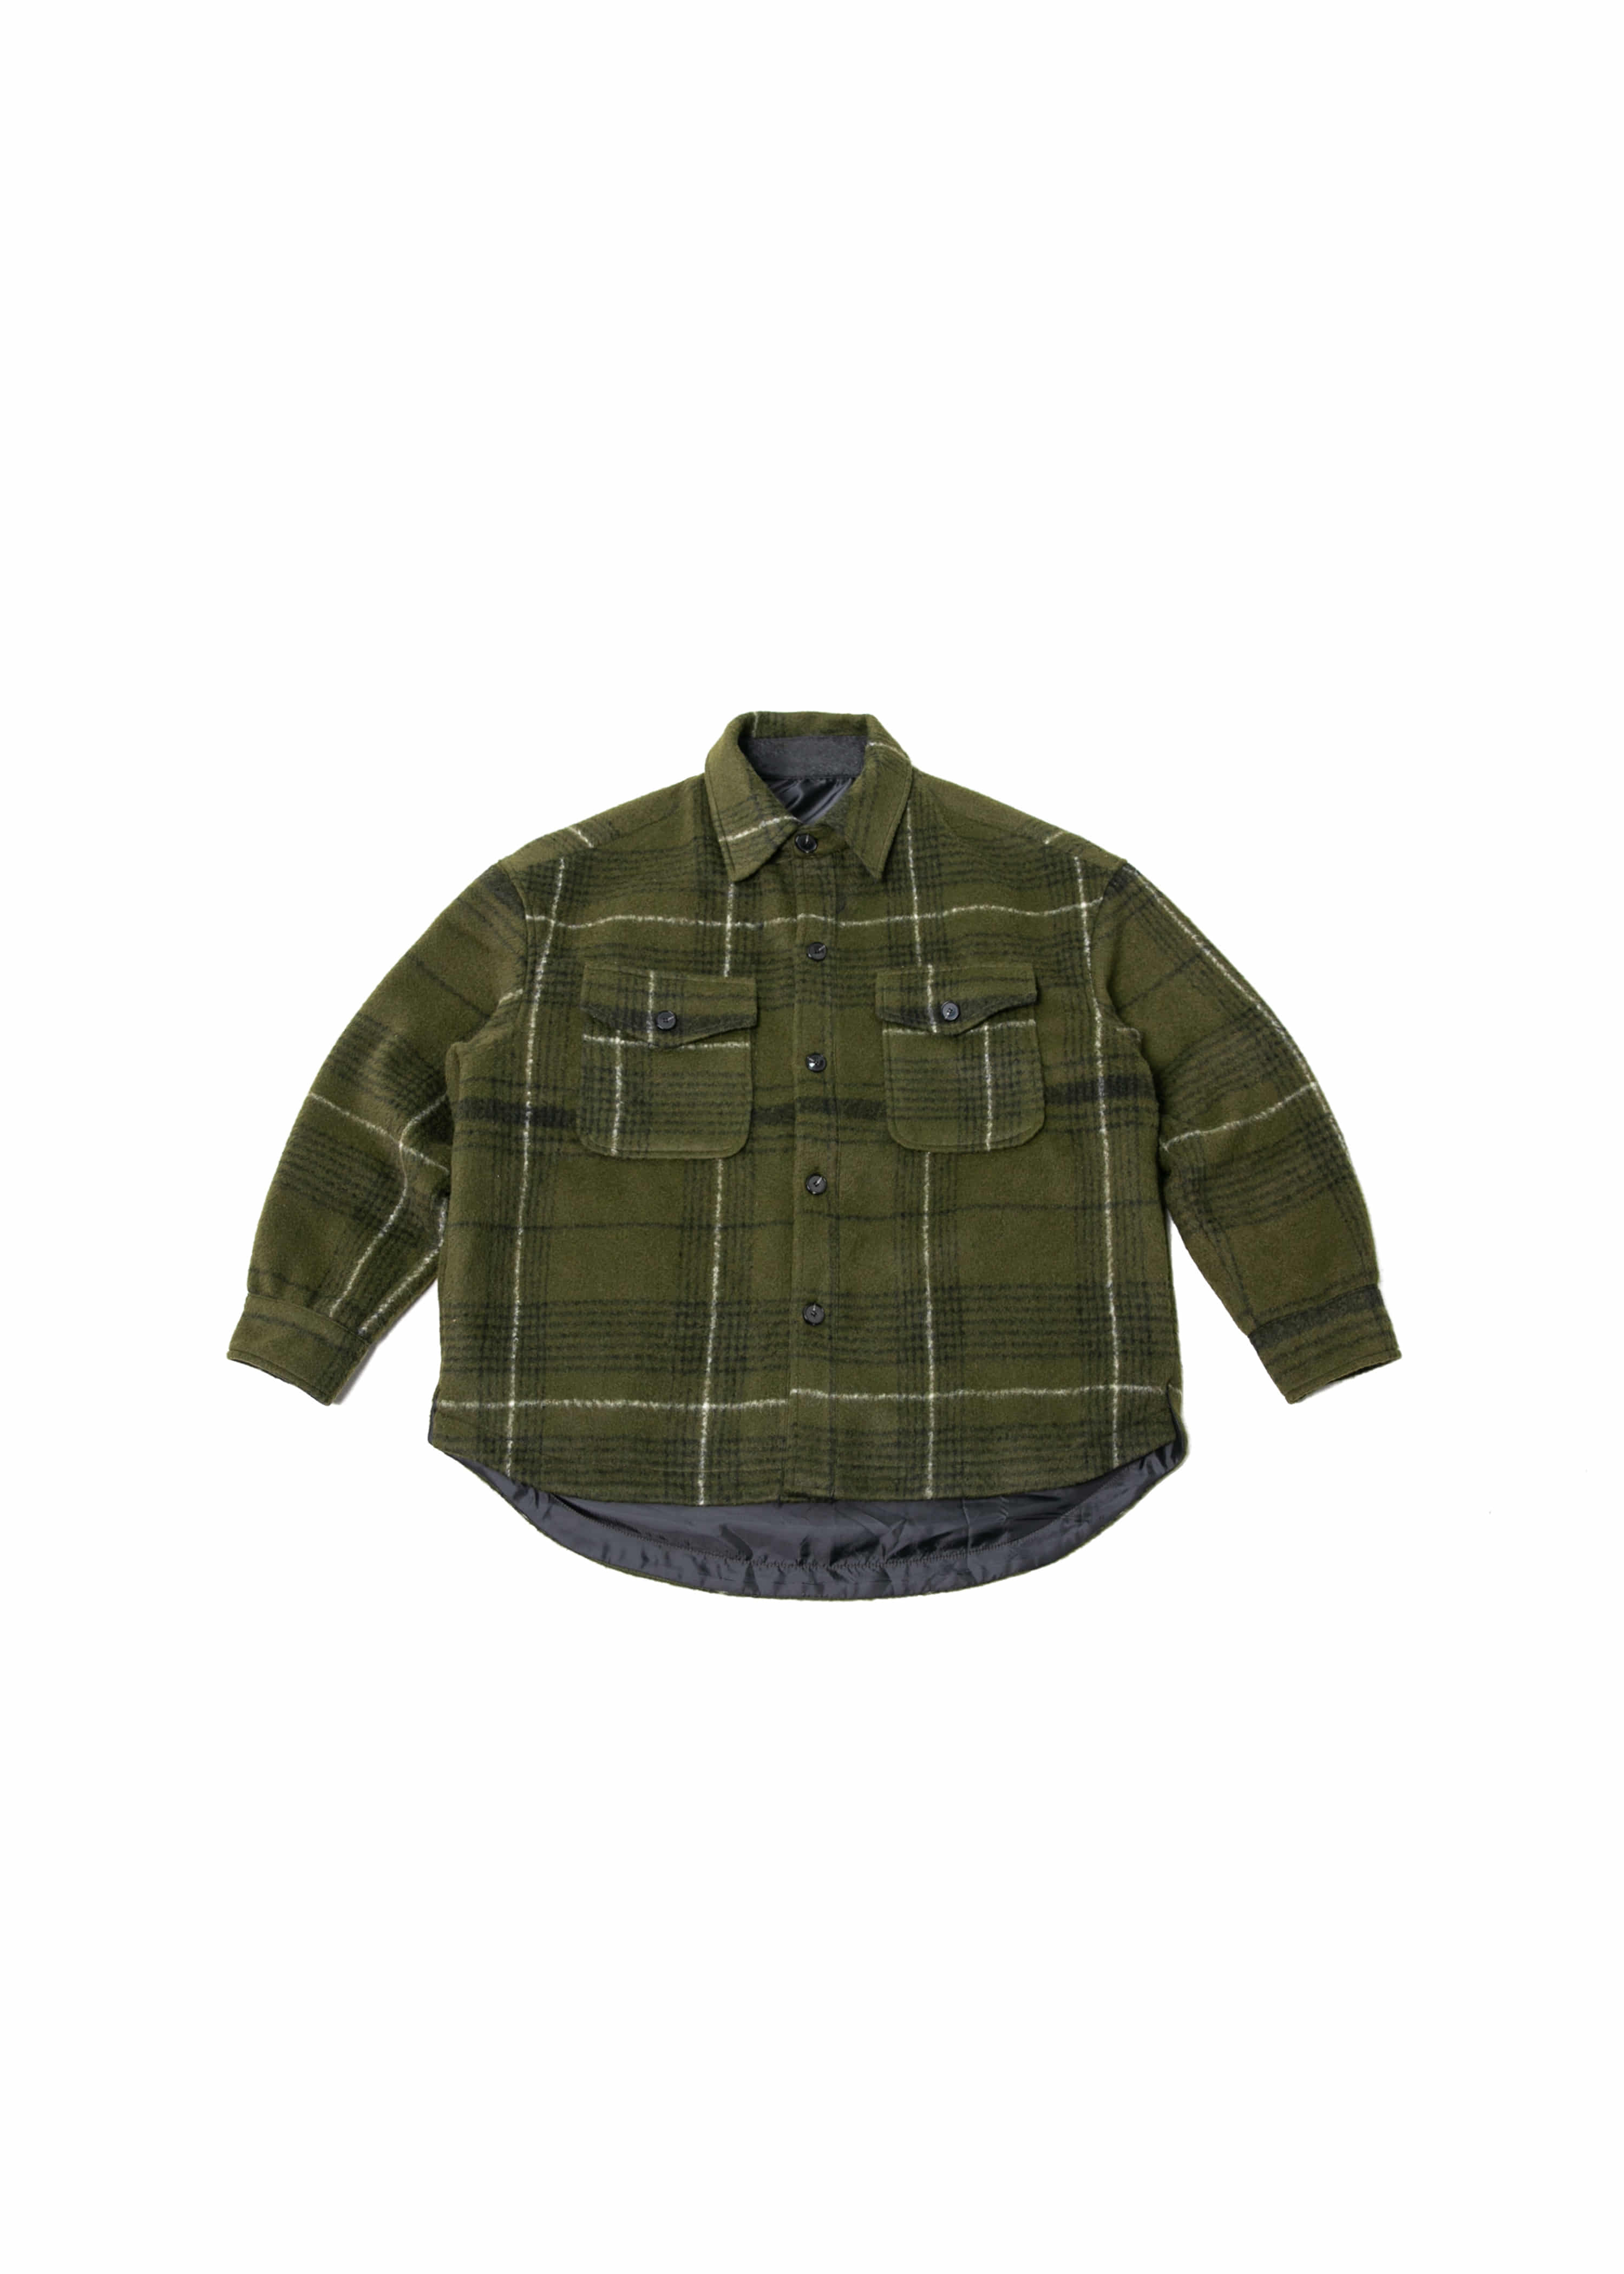 Wool Check Over Shirts Jacket - Olive Green